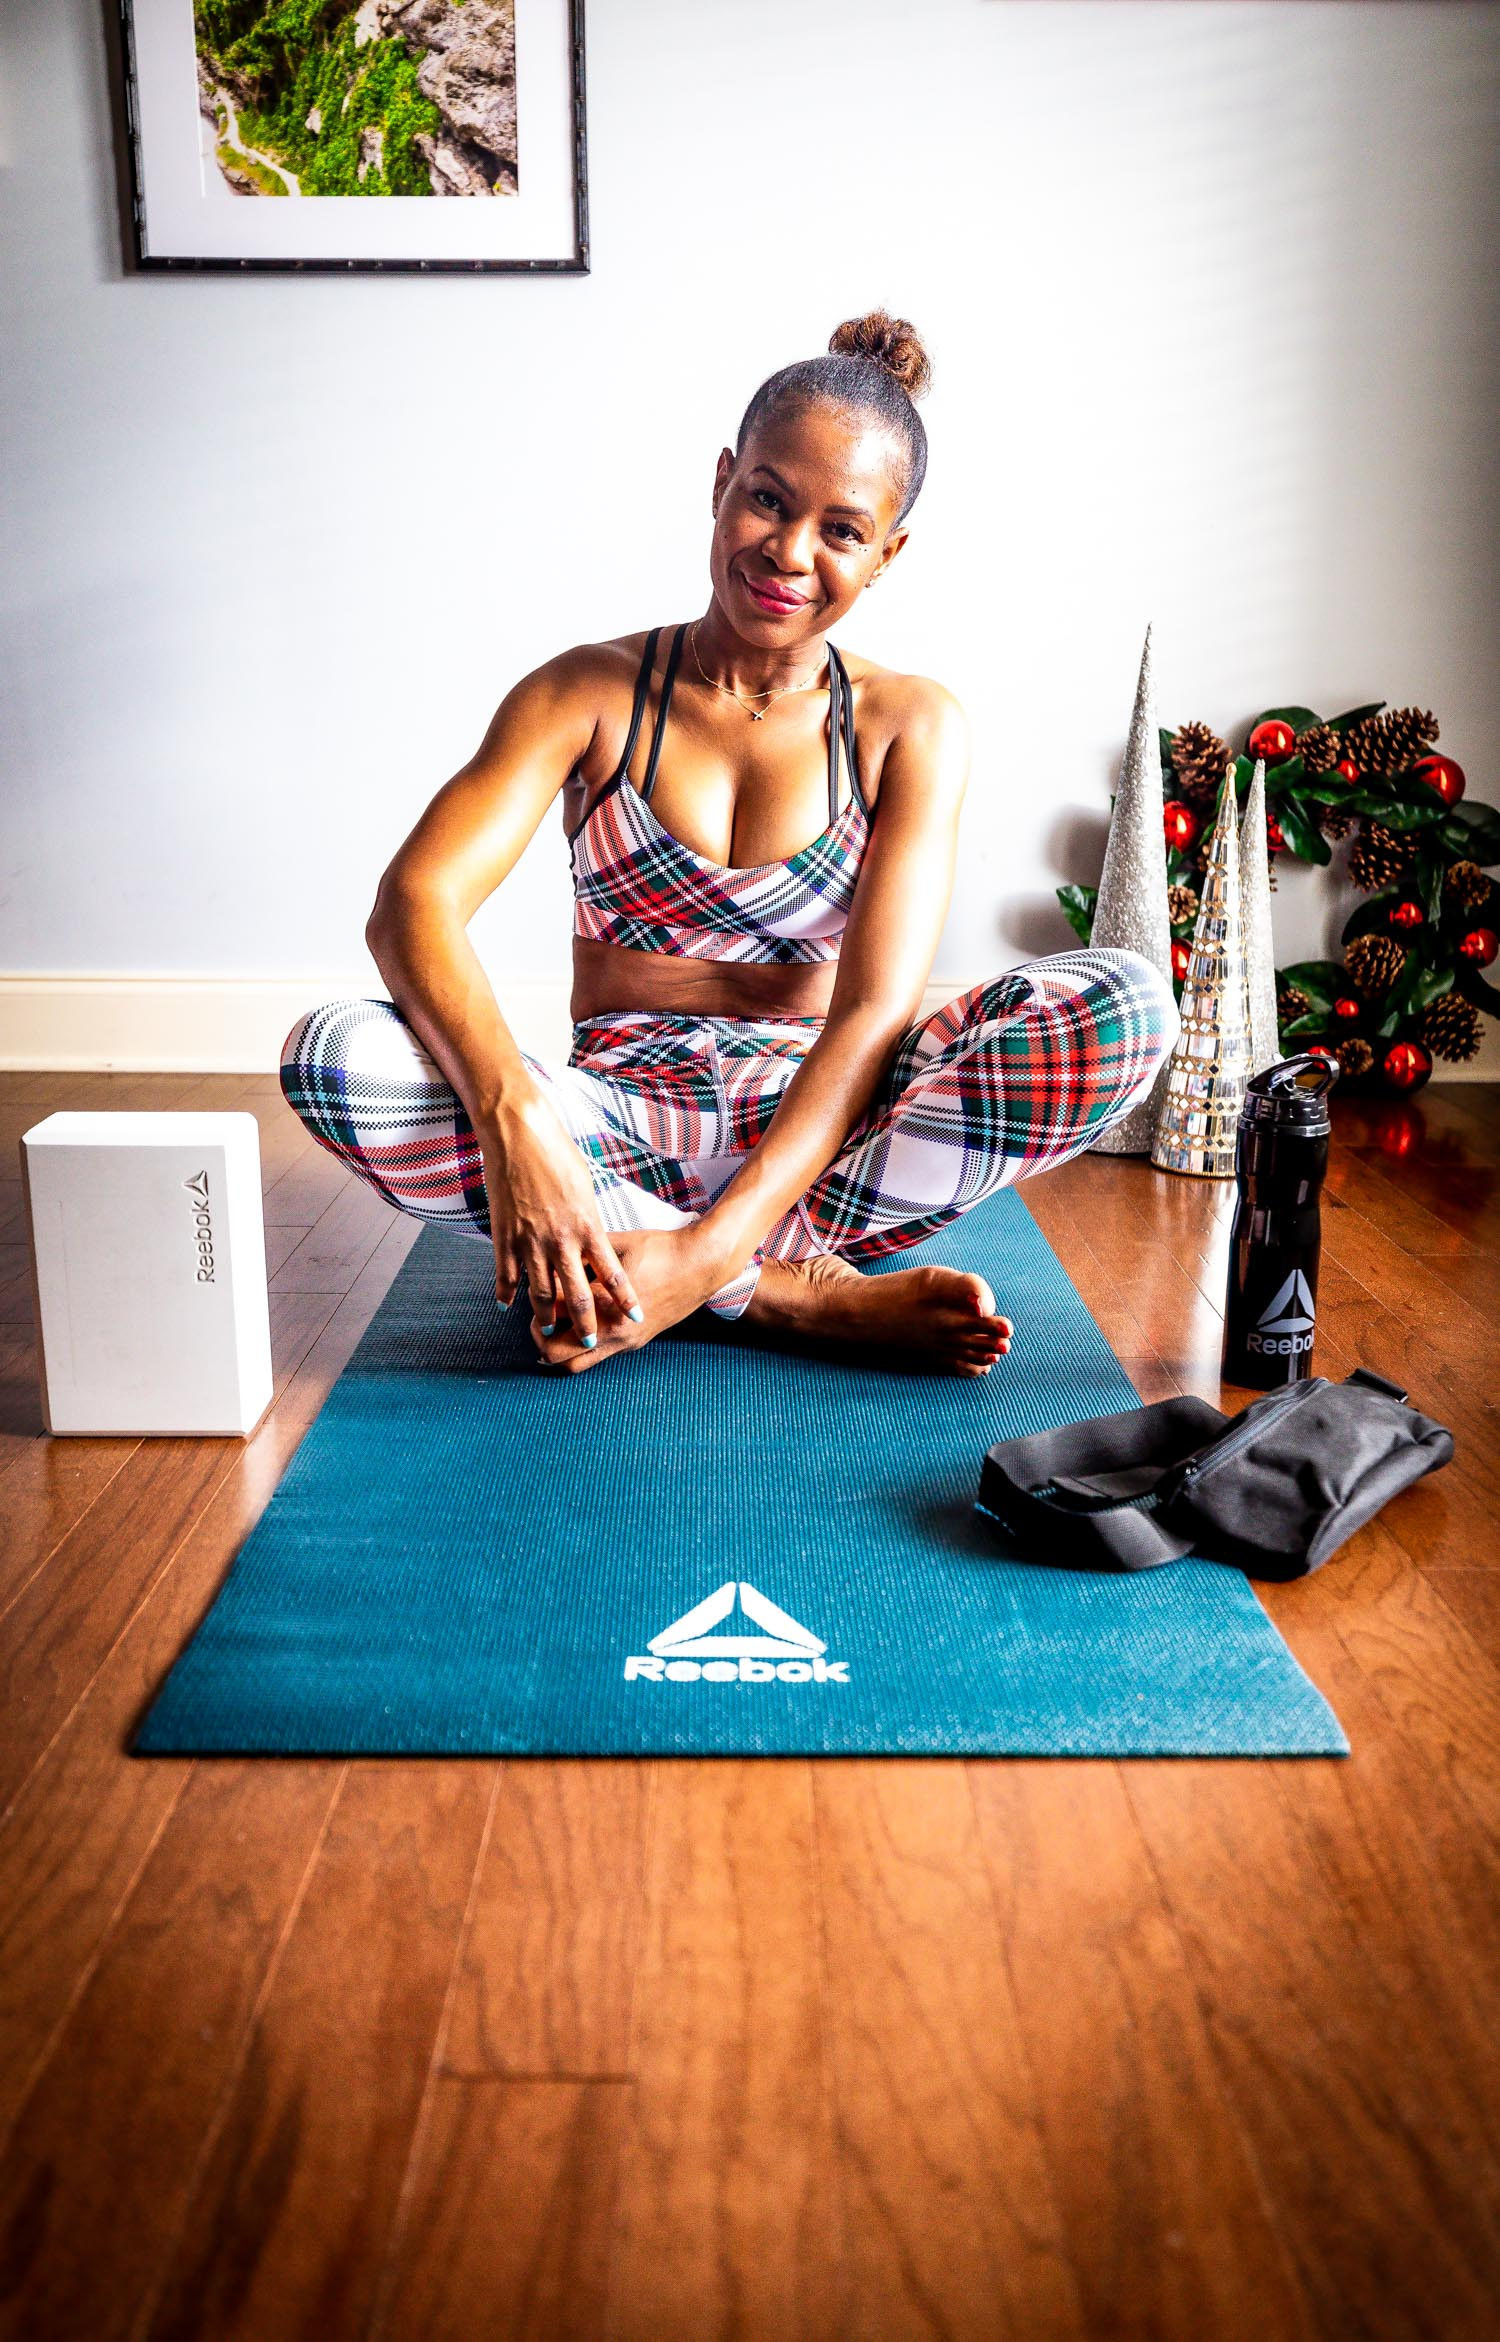 Atlanta Lifestyle Blogger Monica Awe Etuk Wearing Reebok Plaid Leggings And Sports Bra Reebok Yoga Mat Yoga Block And Reebok Water Bottle For The Holiday 22 Awed By Monica